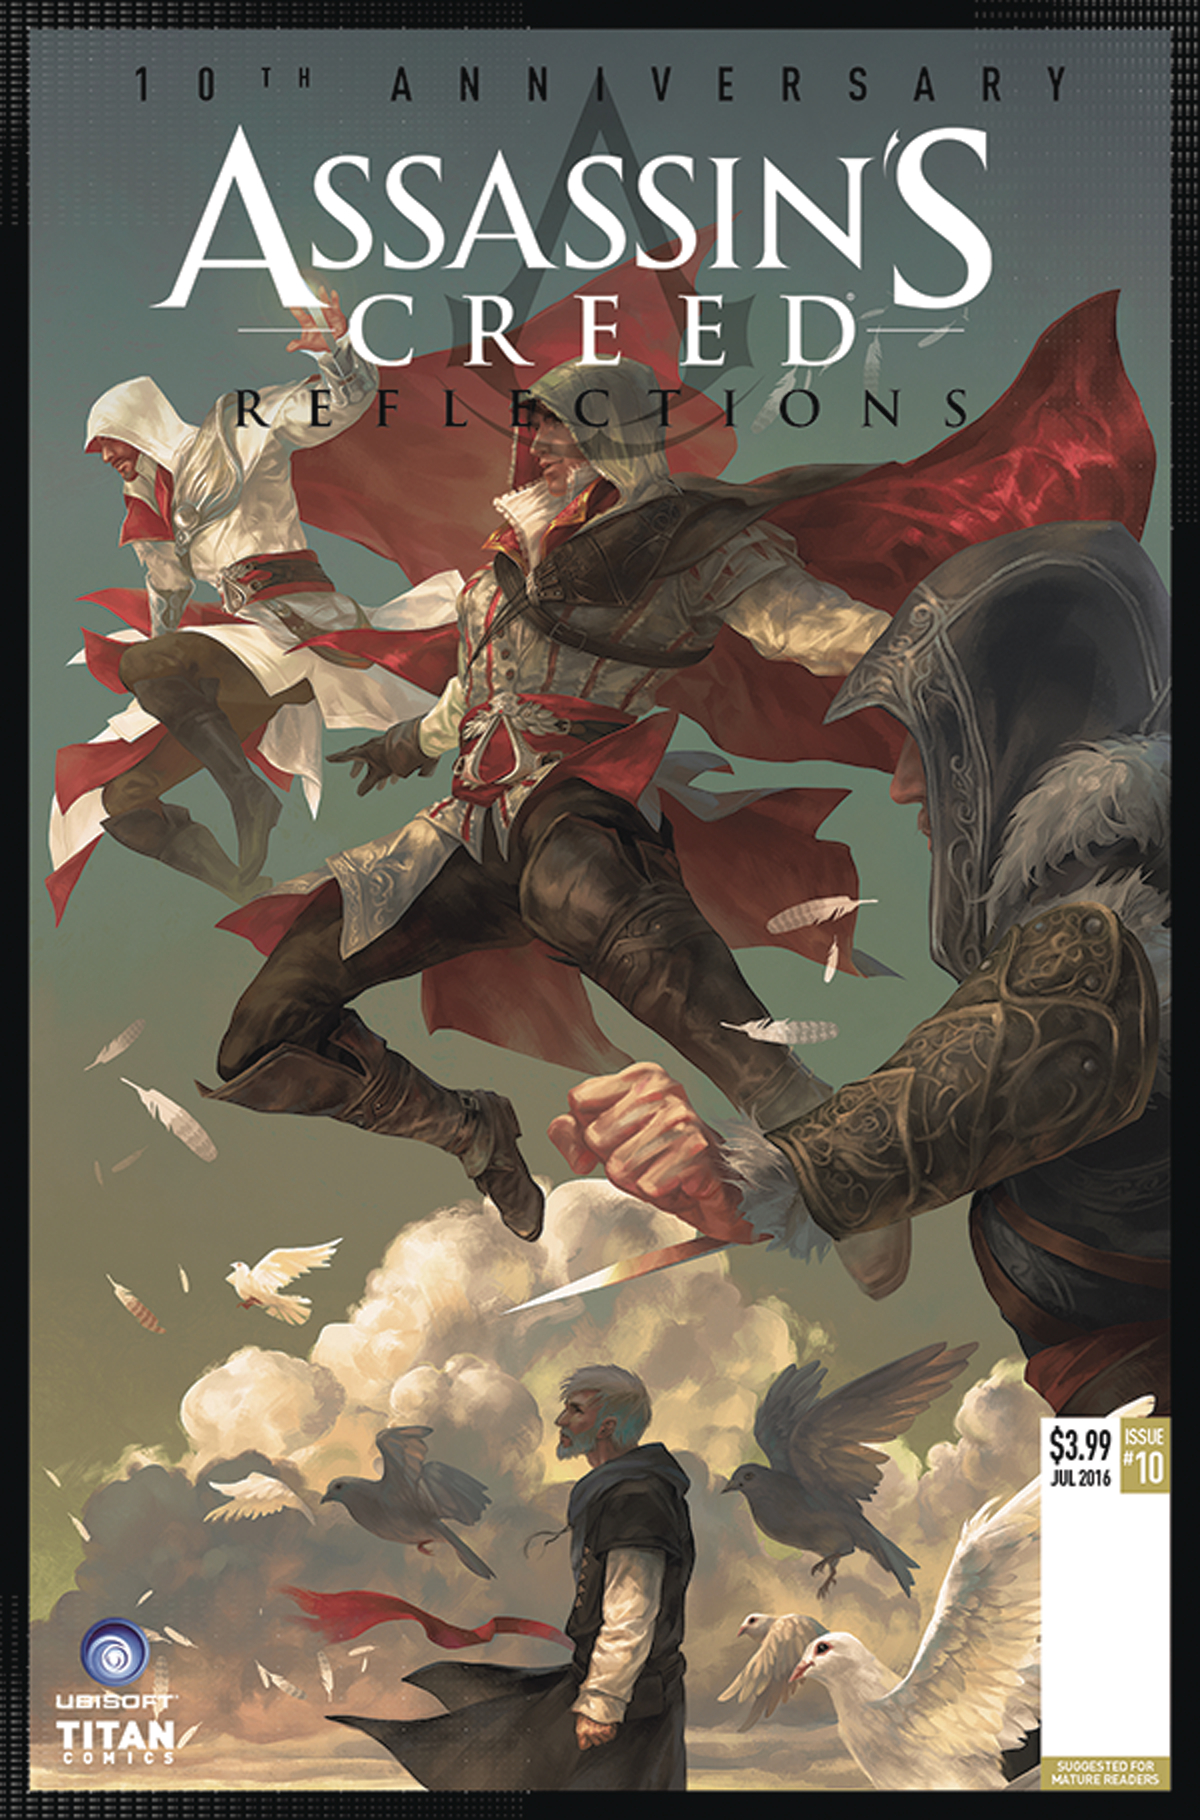 ASSASSINS CREED REFLECTIONS #1 (OF 4) CVR A SUNSETAGAIN